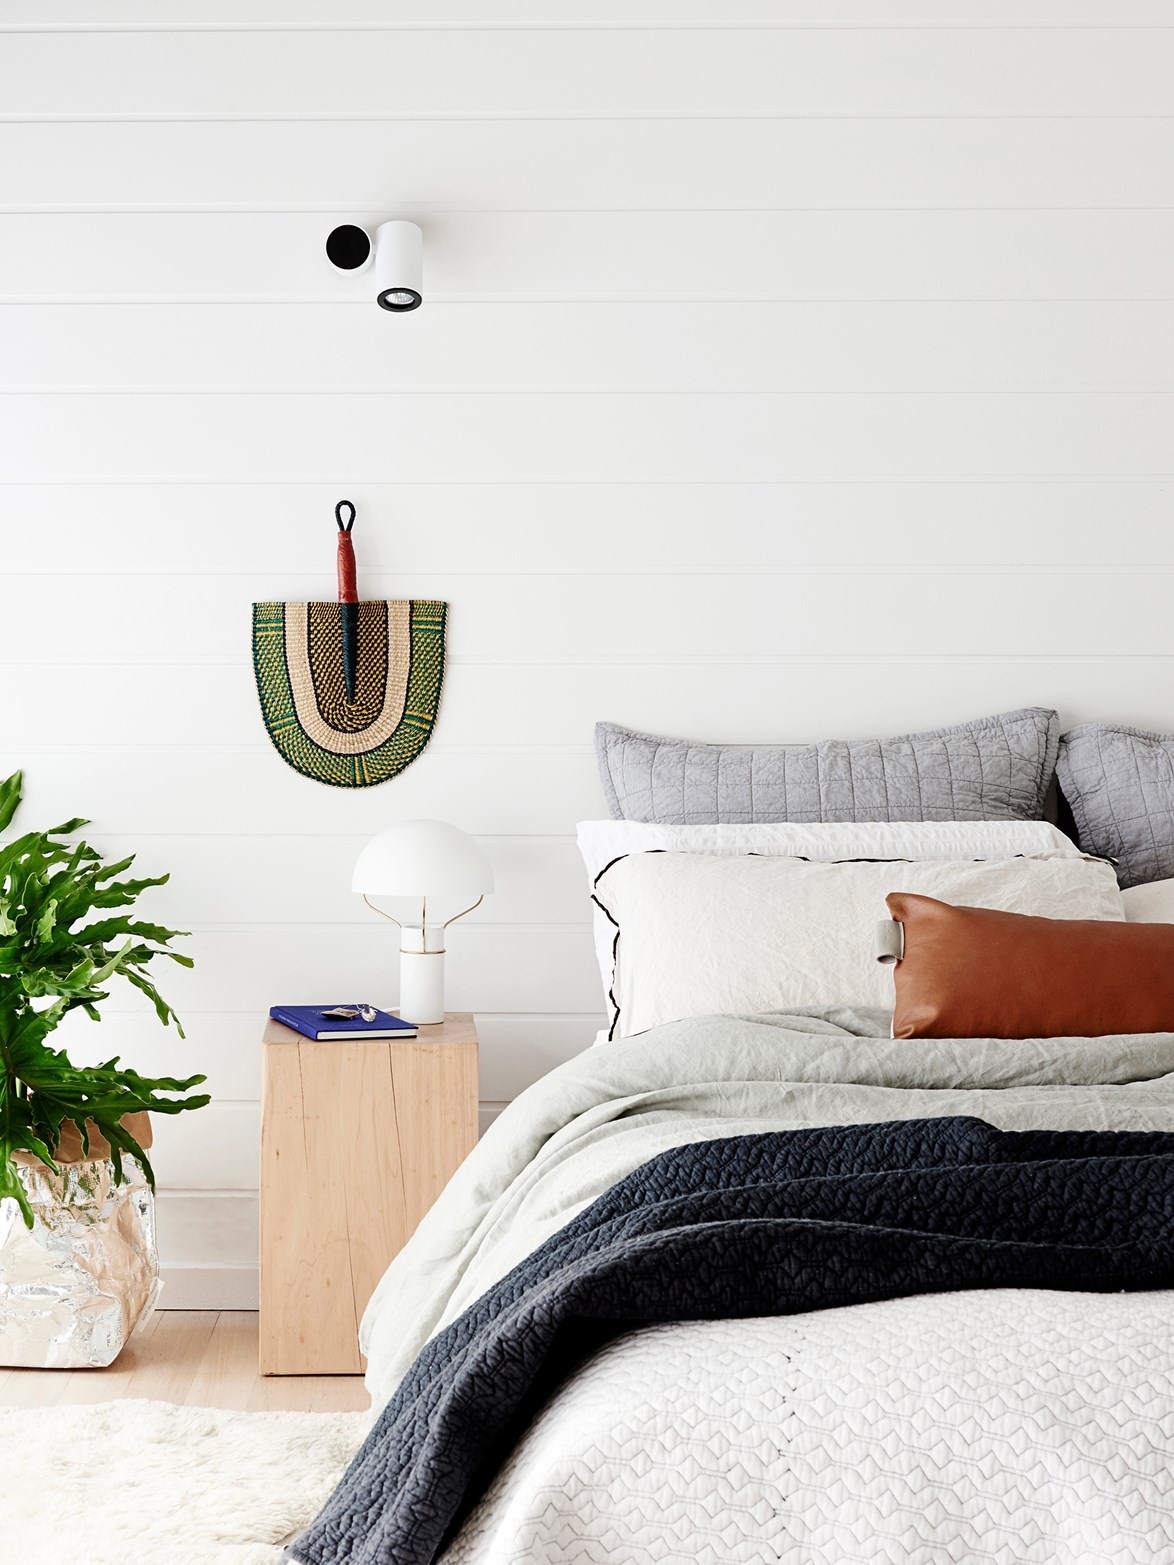 From the handwoven African fan hanging on the wall to a variety of bed linens in calming neutral colours, this space is the perfect example of how layers of texture can transform a simple space and colour scheme into something special.